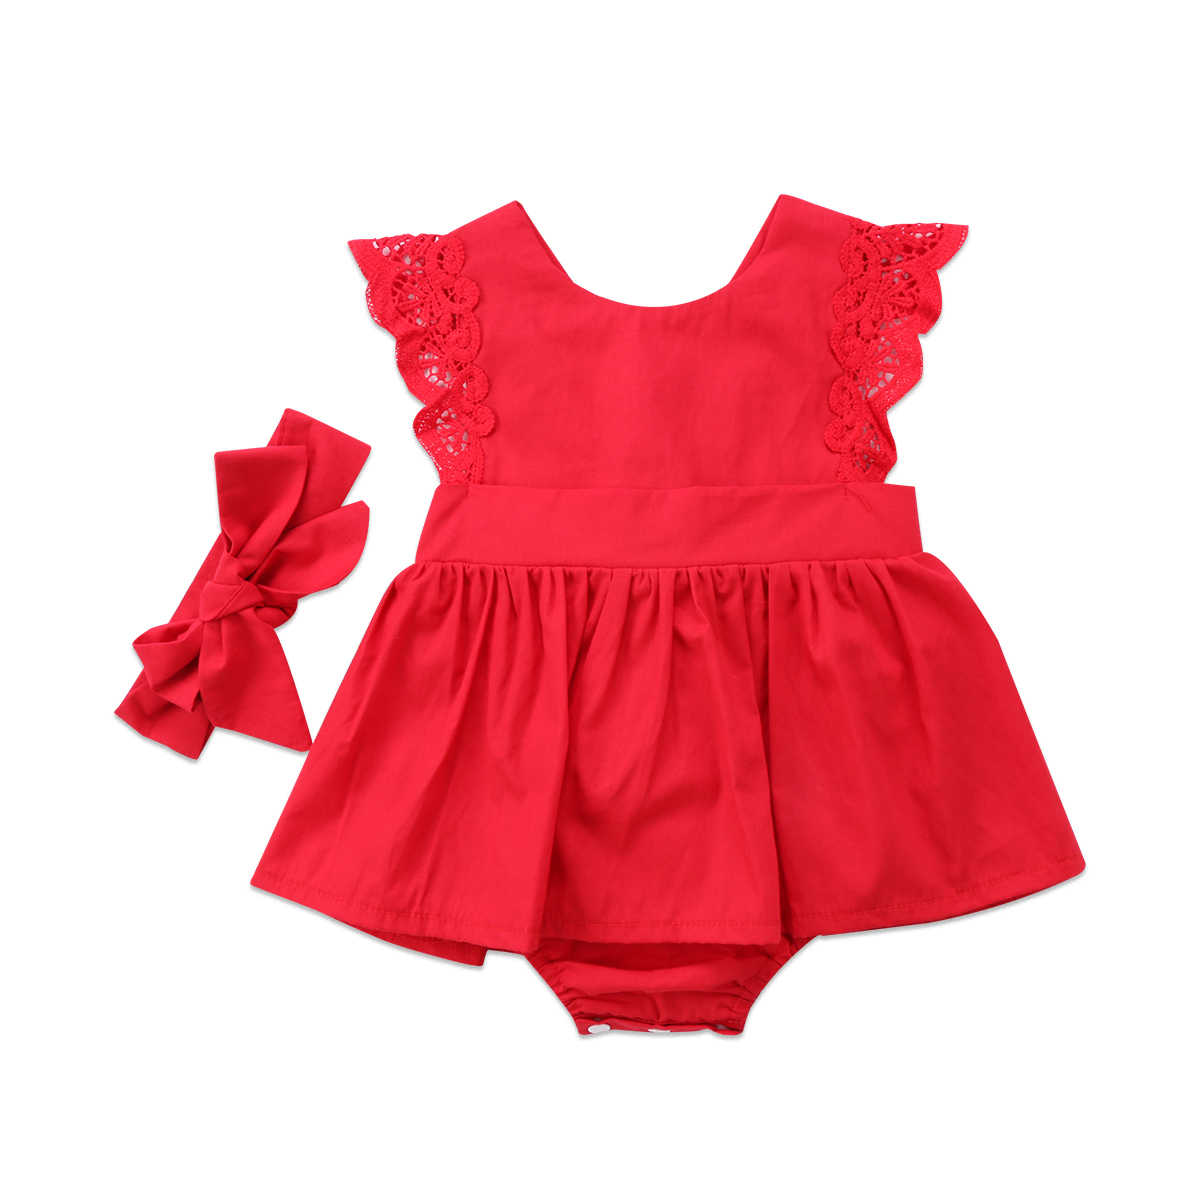 Baby Christmas Ruffle Red Lace Romper Dress Baby Girls Sister Princess Kids Xmas Party Dresses Cotton Newborn Costume